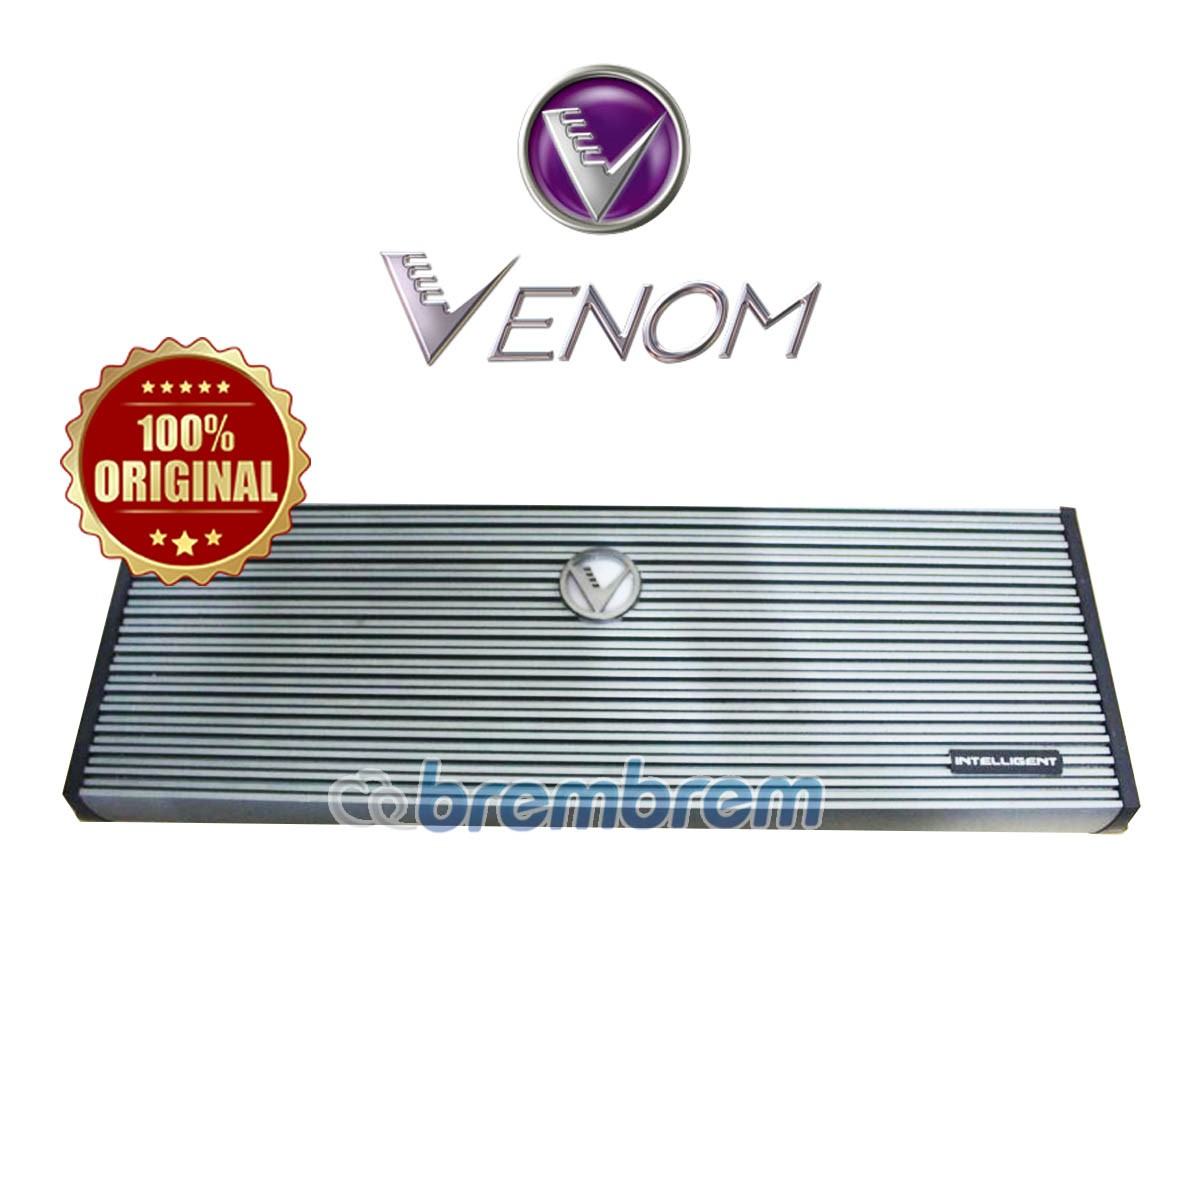 VENOM INTELLEGENT SERIES VI500.1D - POWER MONOBLOCK